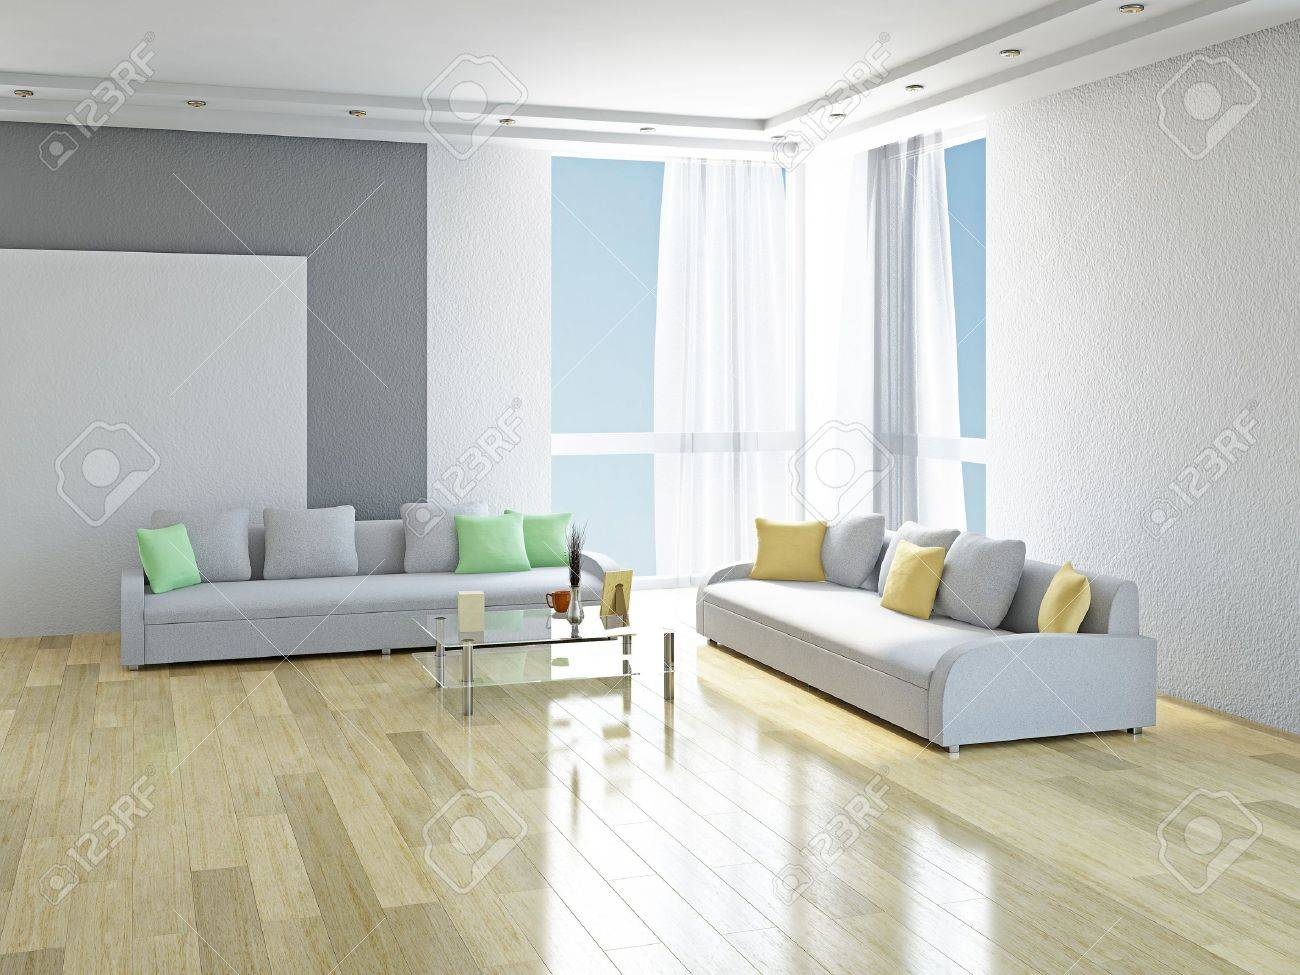 White sofas with green and yellow pillows in the room Stock Photo - 19811100